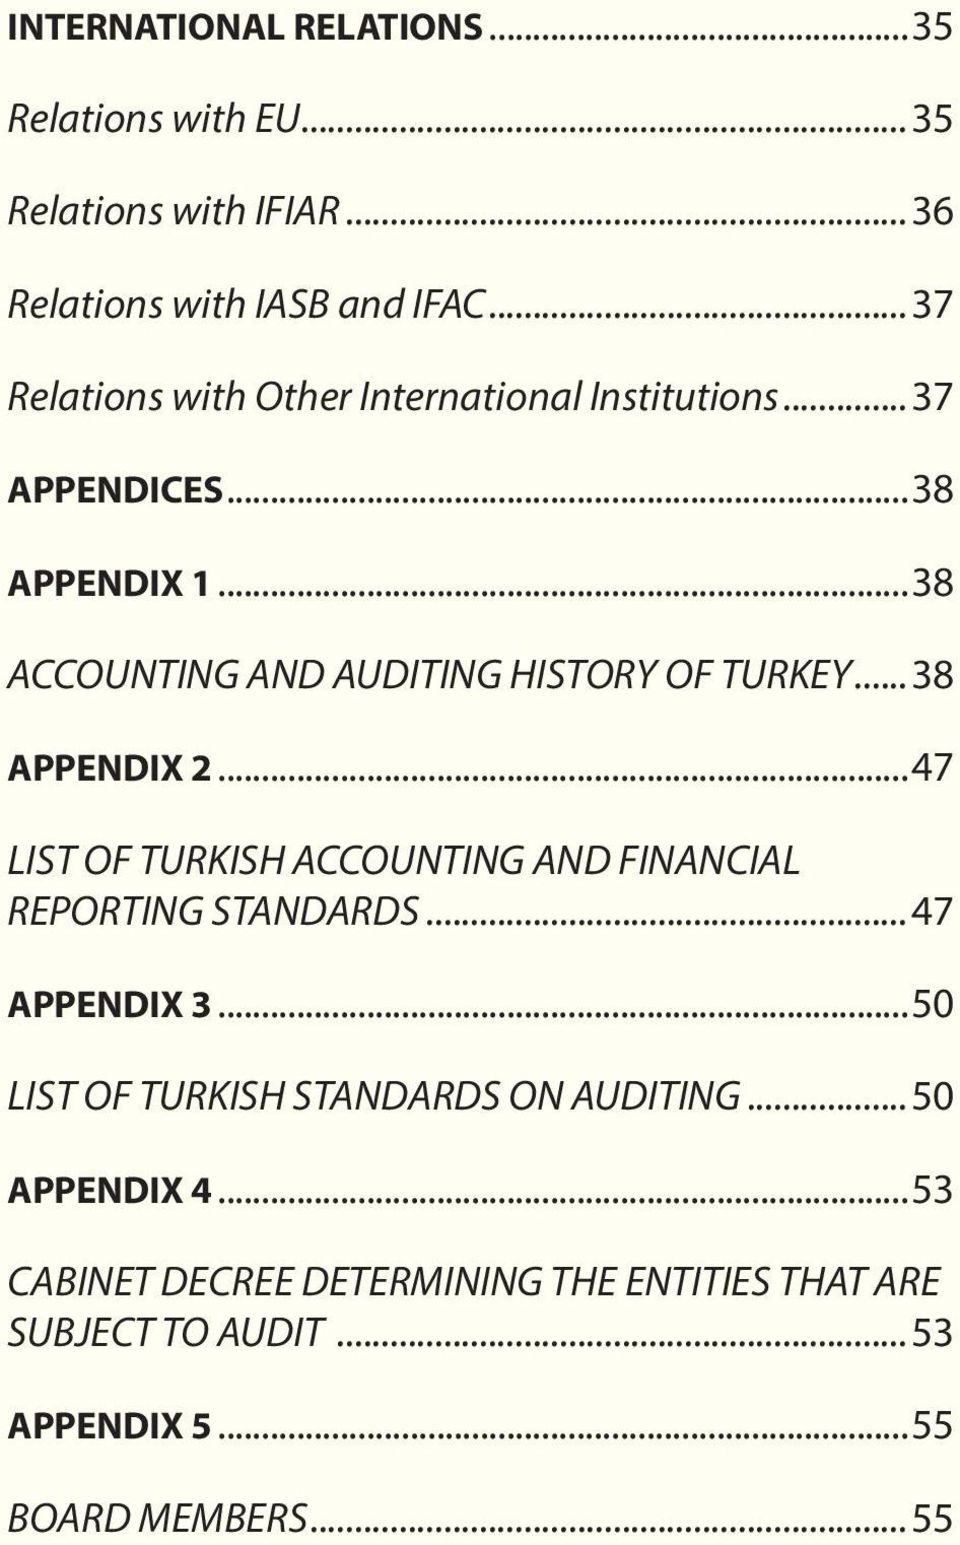 ..38 ACCOUNTING AND AUDITING HISTORY OF TURKEY...38 APPENDIX 2...47 LIST OF TURKISH ACCOUNTING AND FINANCIAL REPORTING STANDARDS.